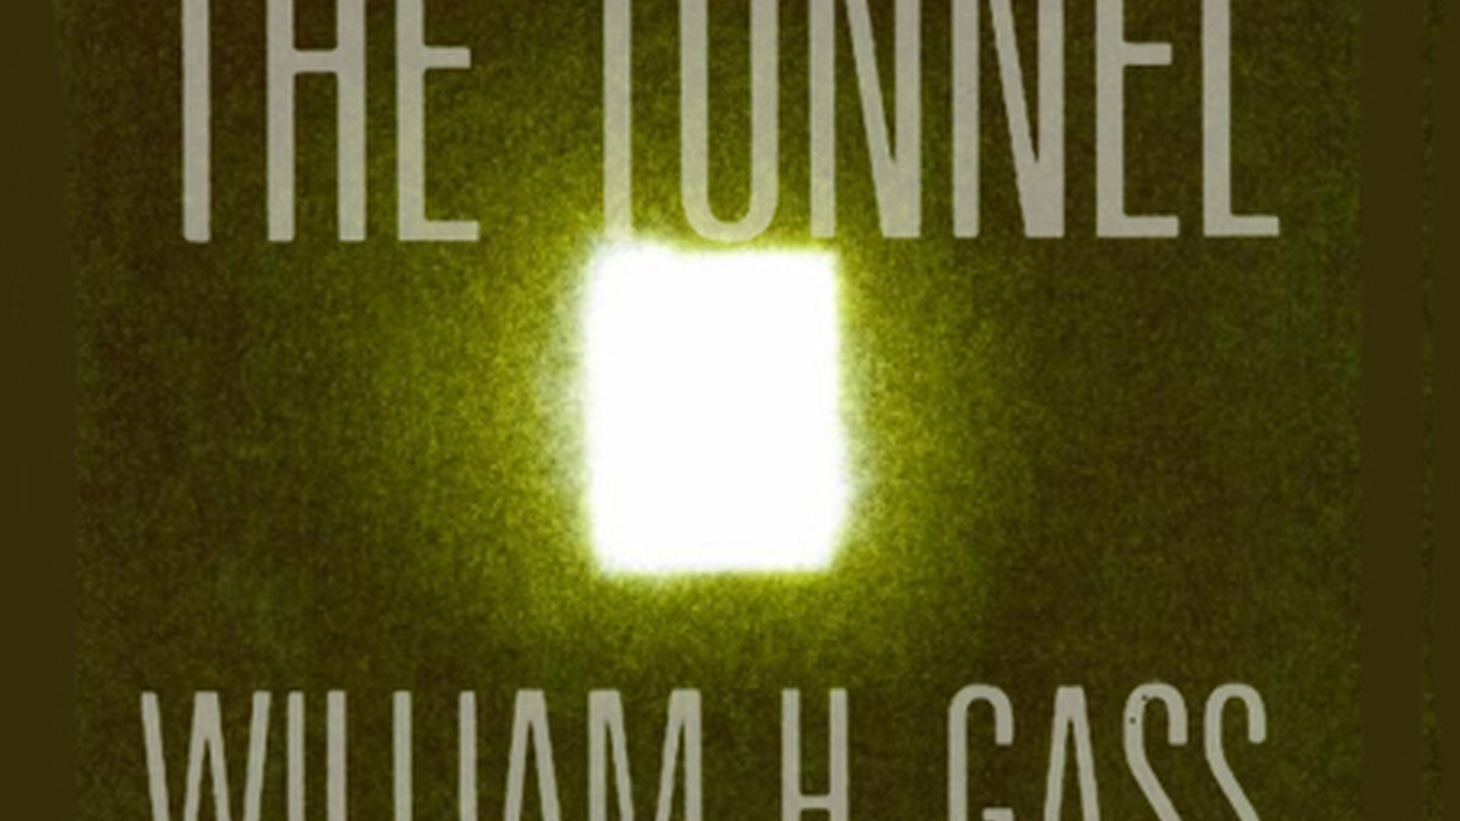 Author William H. Gass discusses the evolution and style of his thirty-years-in-the-making new novel, finally published this month.